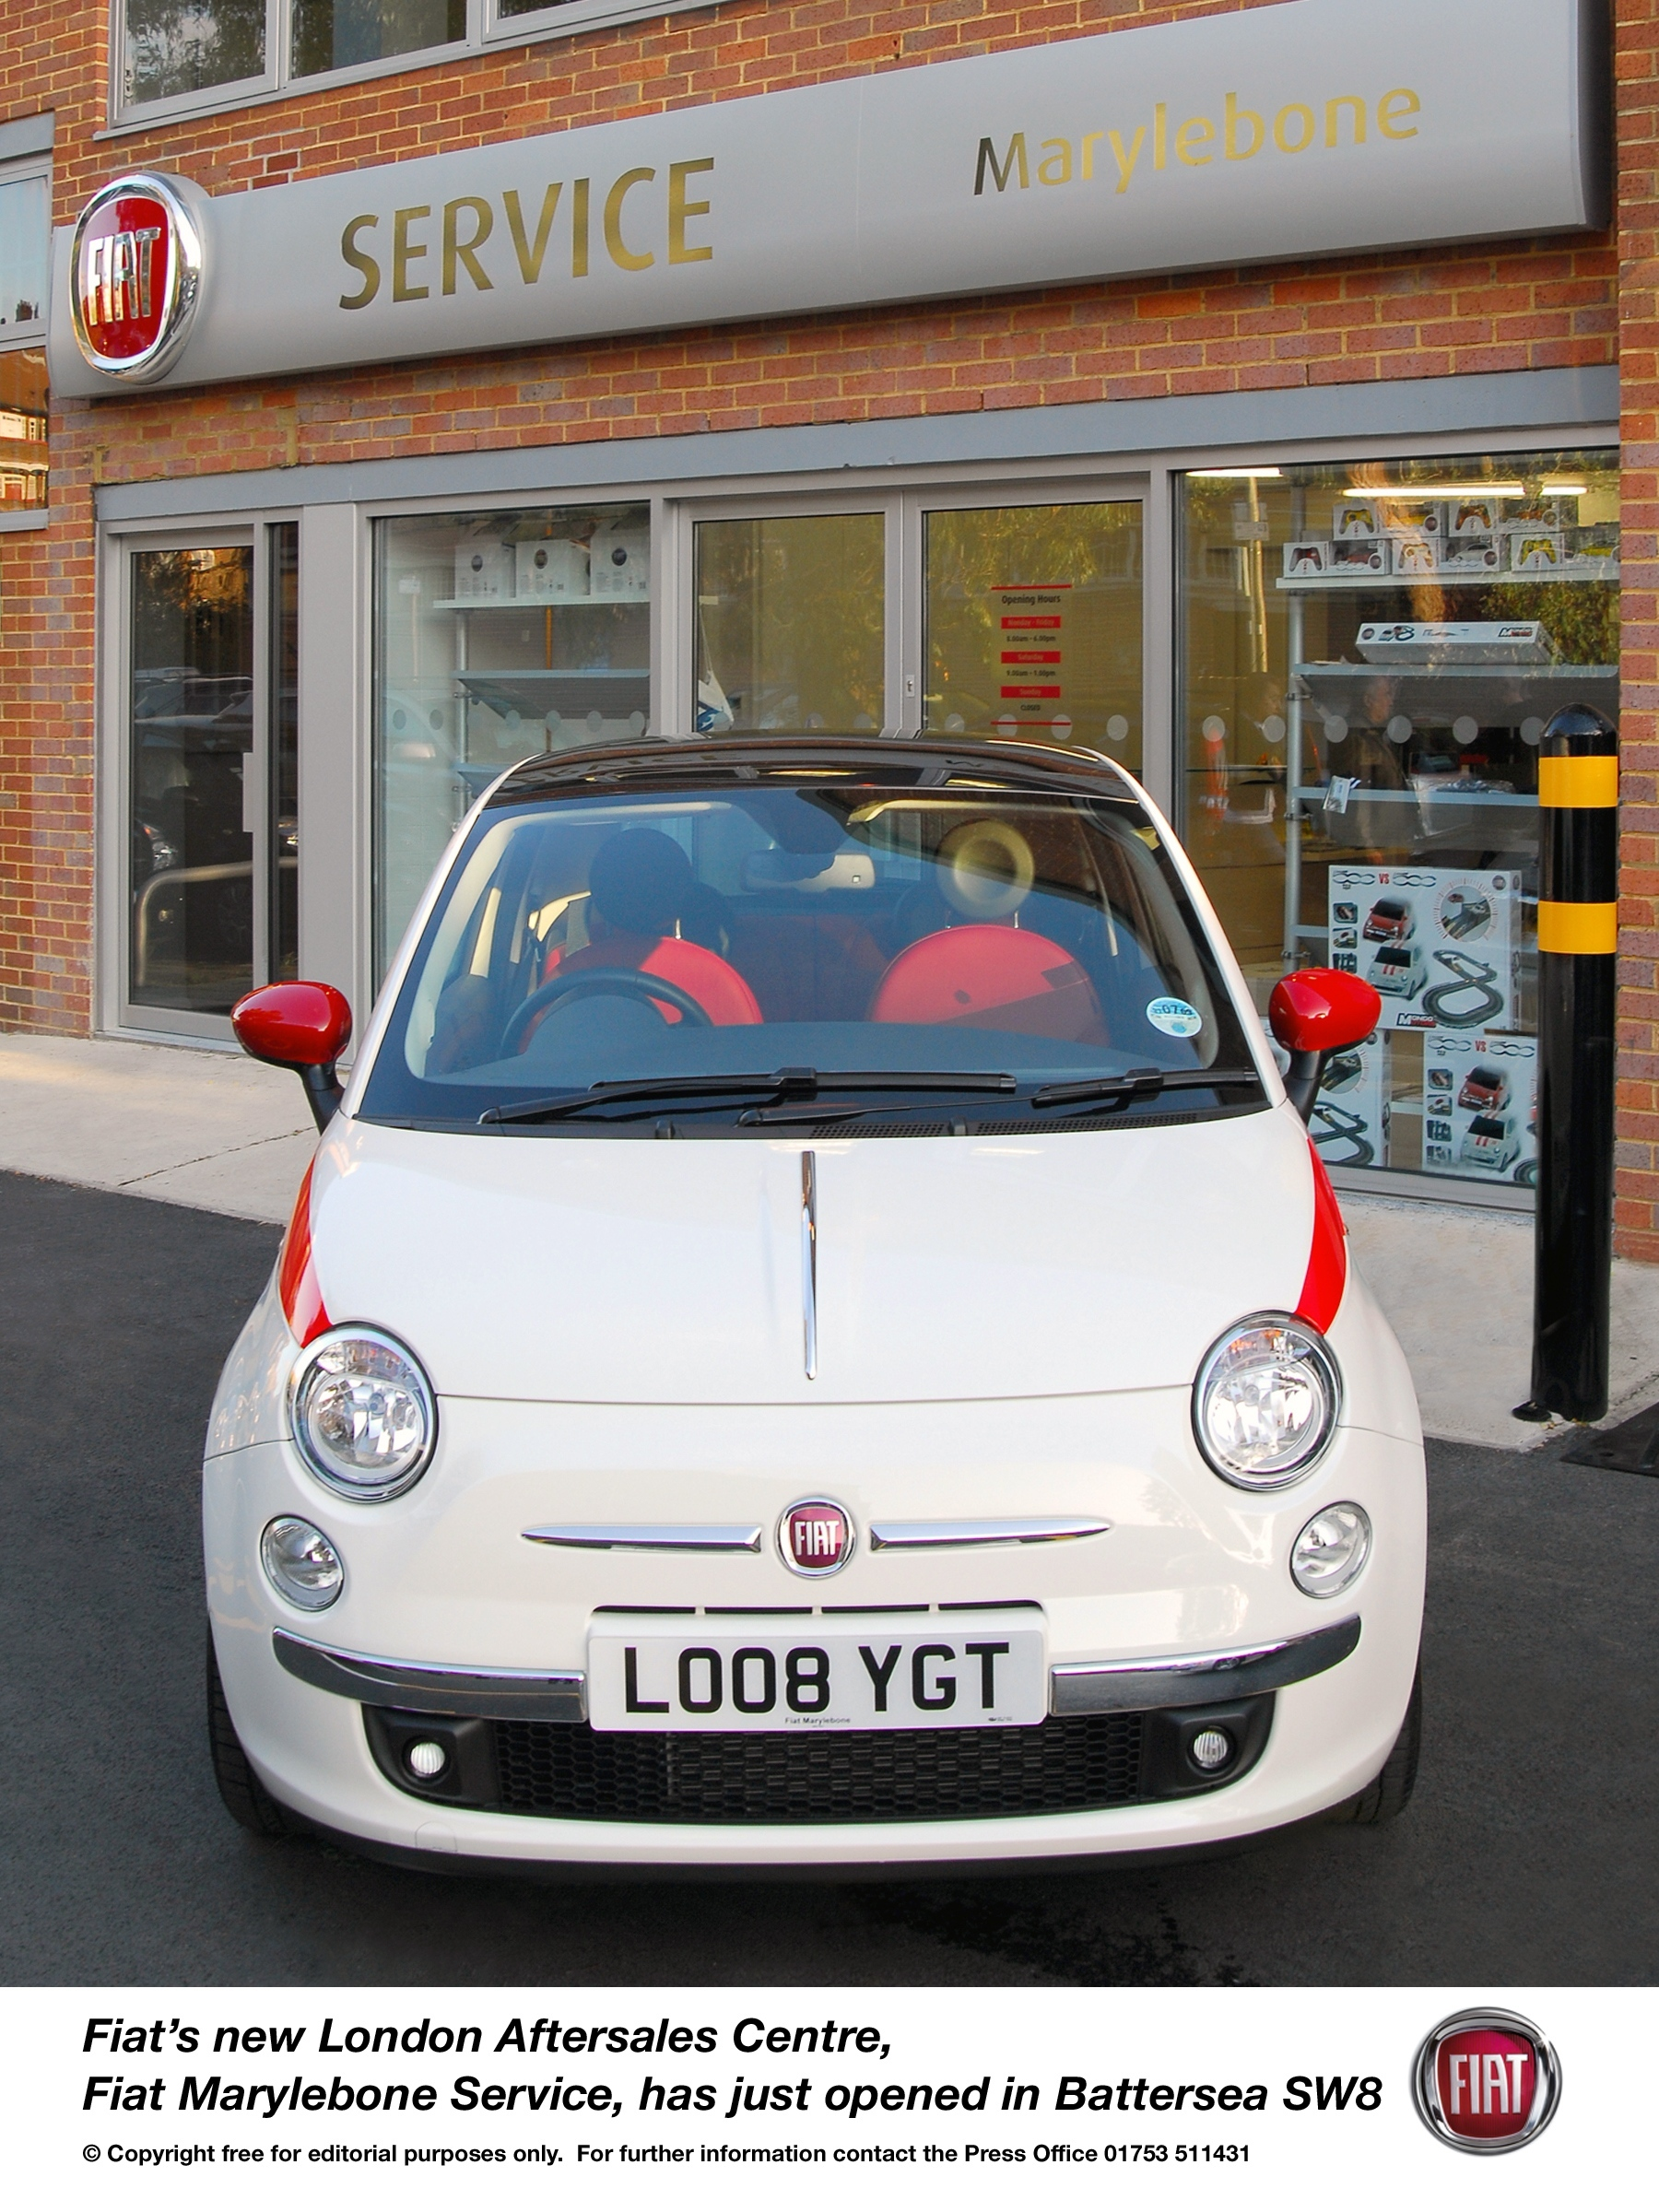 Johnston Chrysler Fiat >> OFFICIAL OPENING FOR FIAT'S NEW LONDON SERVICE CENTRE - Press - Fiat Group Automobiles Press